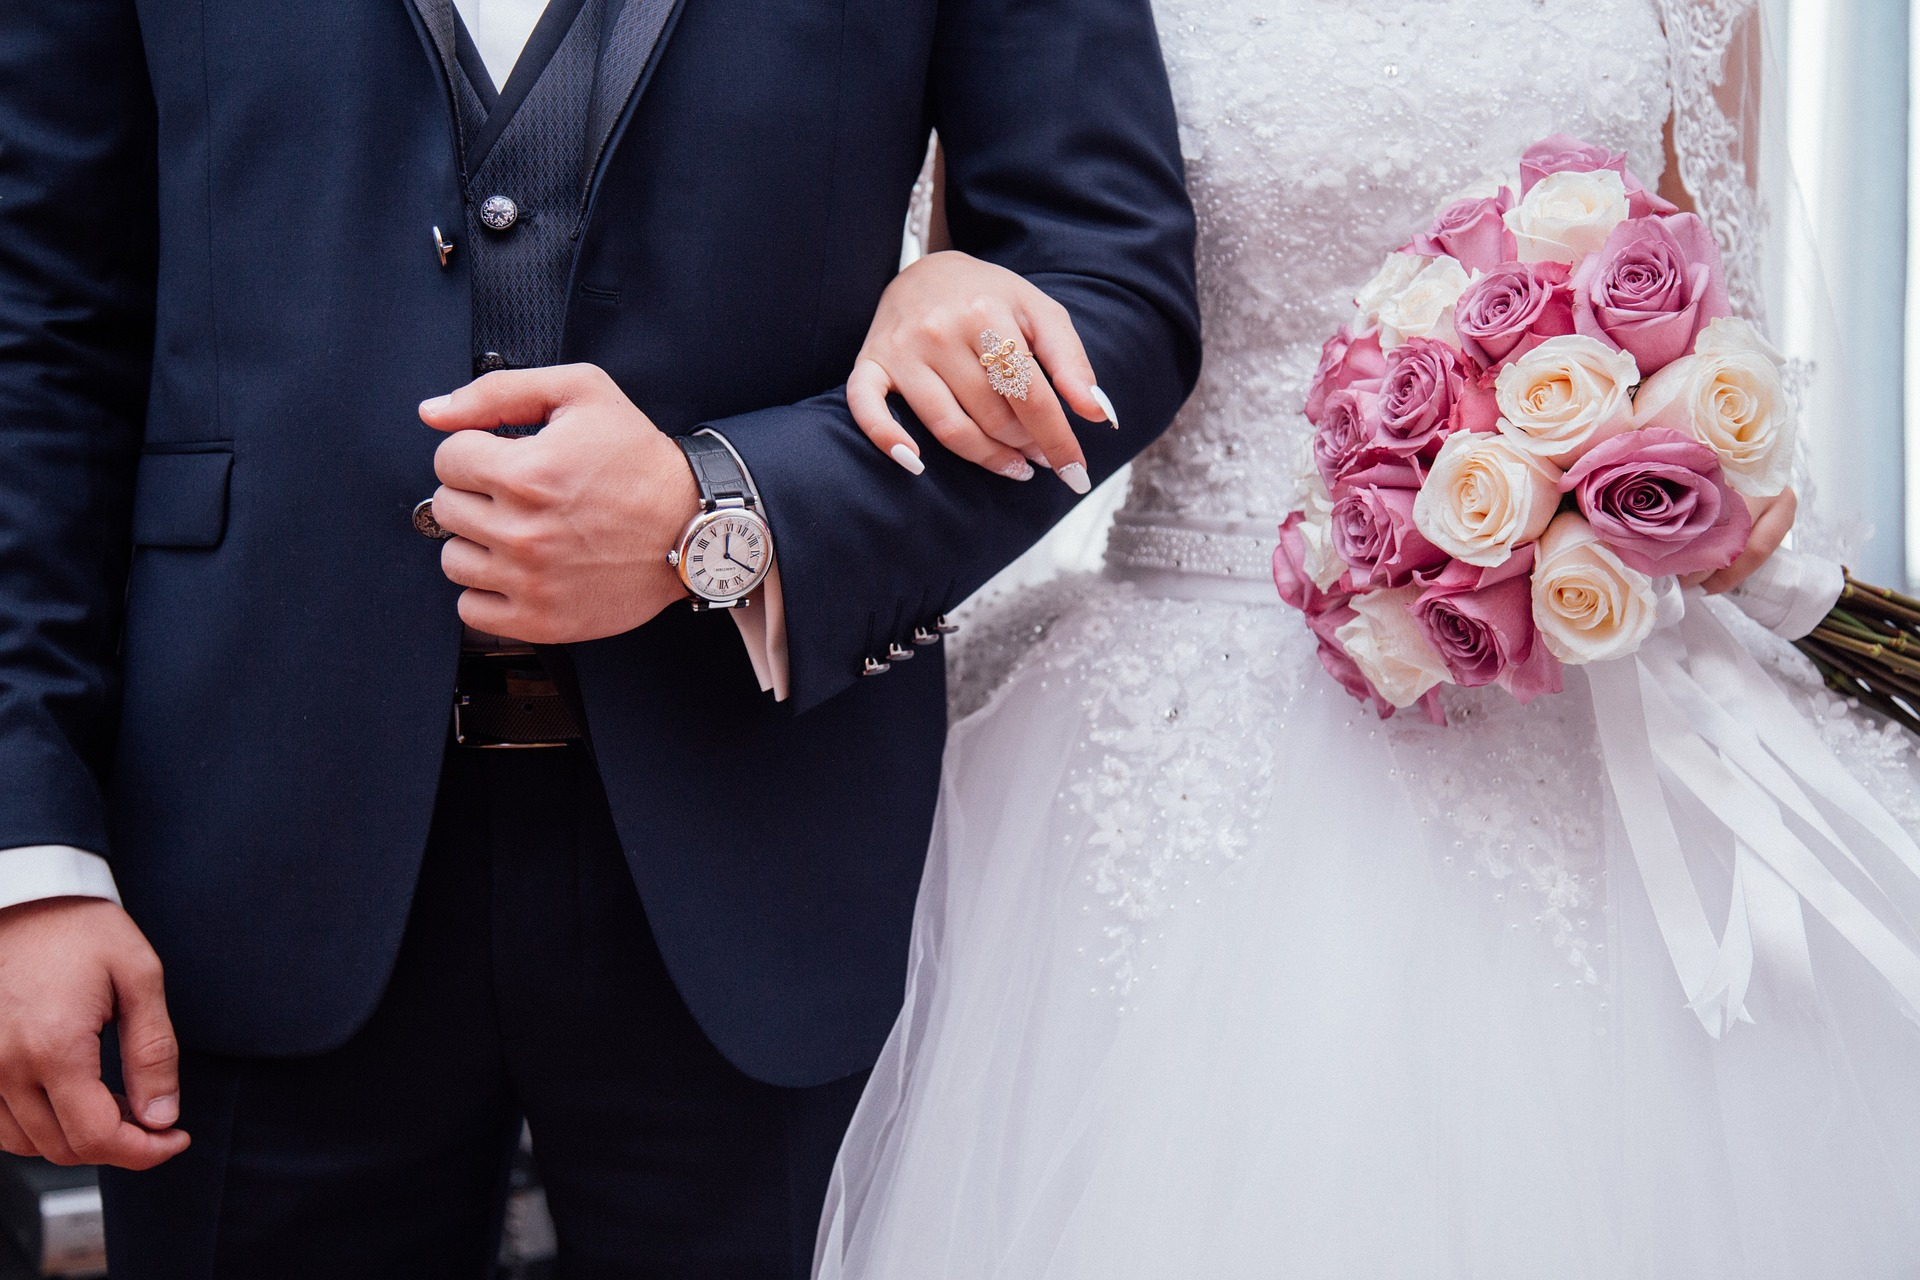 Buying a NJ home does not have to be as stressful as planning a wedding!